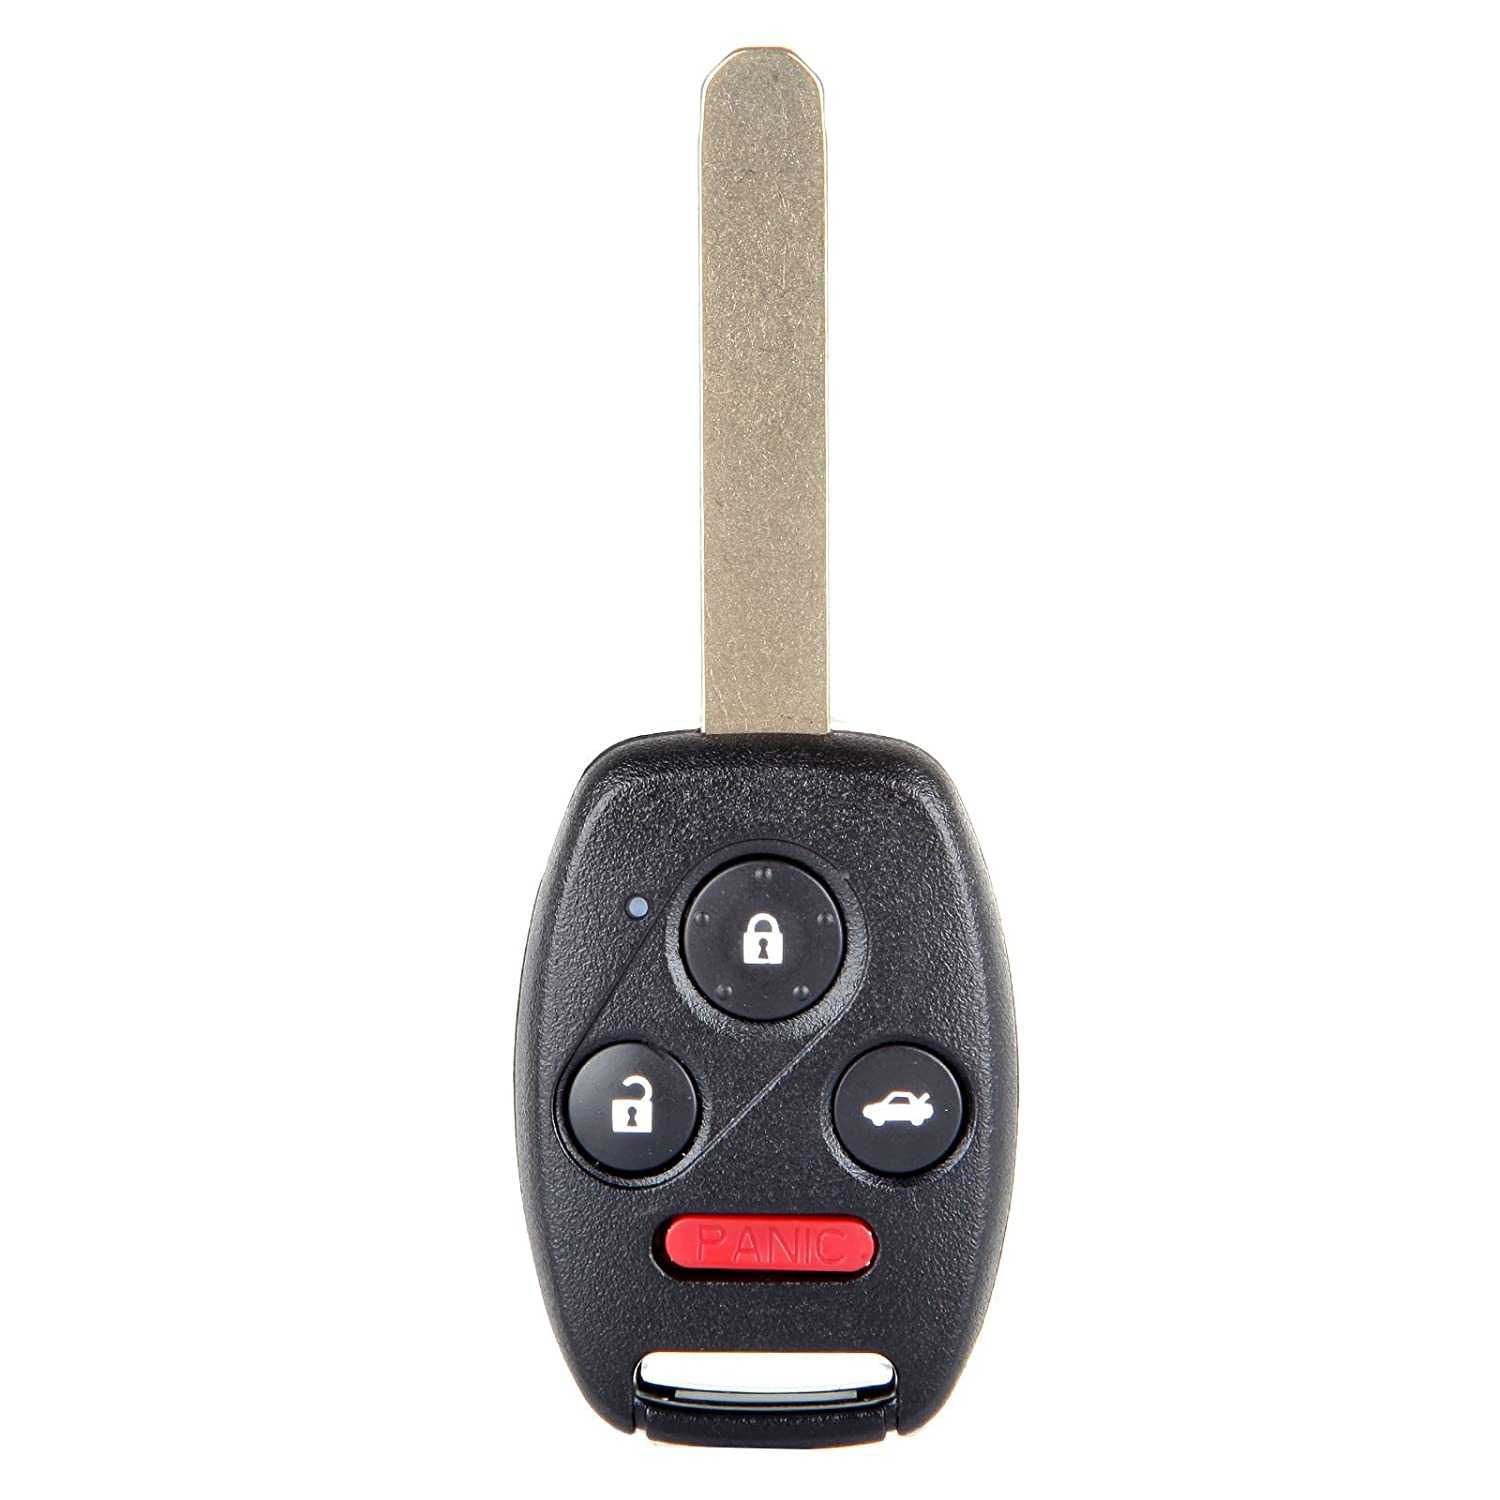 2x New Replacement Keyless Remote Key Fob For Honda Accord Pilot KR55WK49308